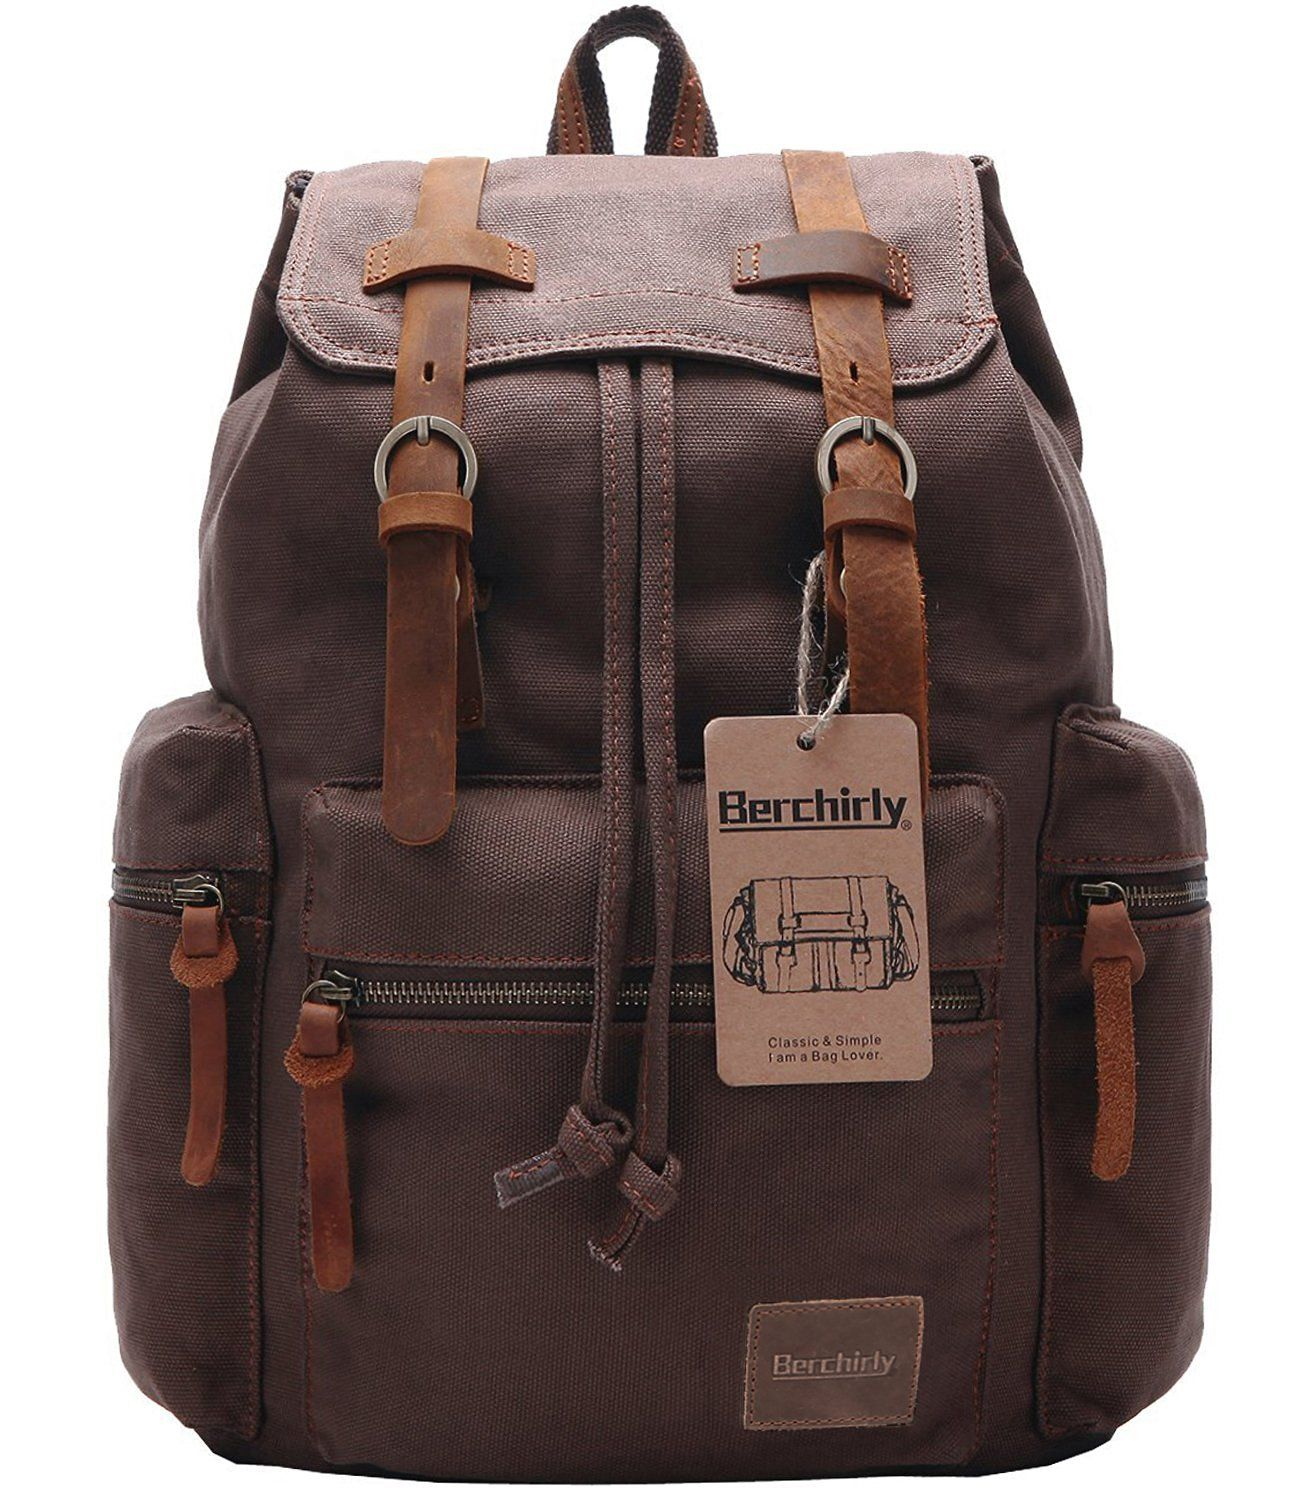 396ed9b10a Berchirly Vintage Men Casual Canvas Leather Backpack Rucksack Bookbag  Satchel Hiking Bag     See this great image   Travel Backpack